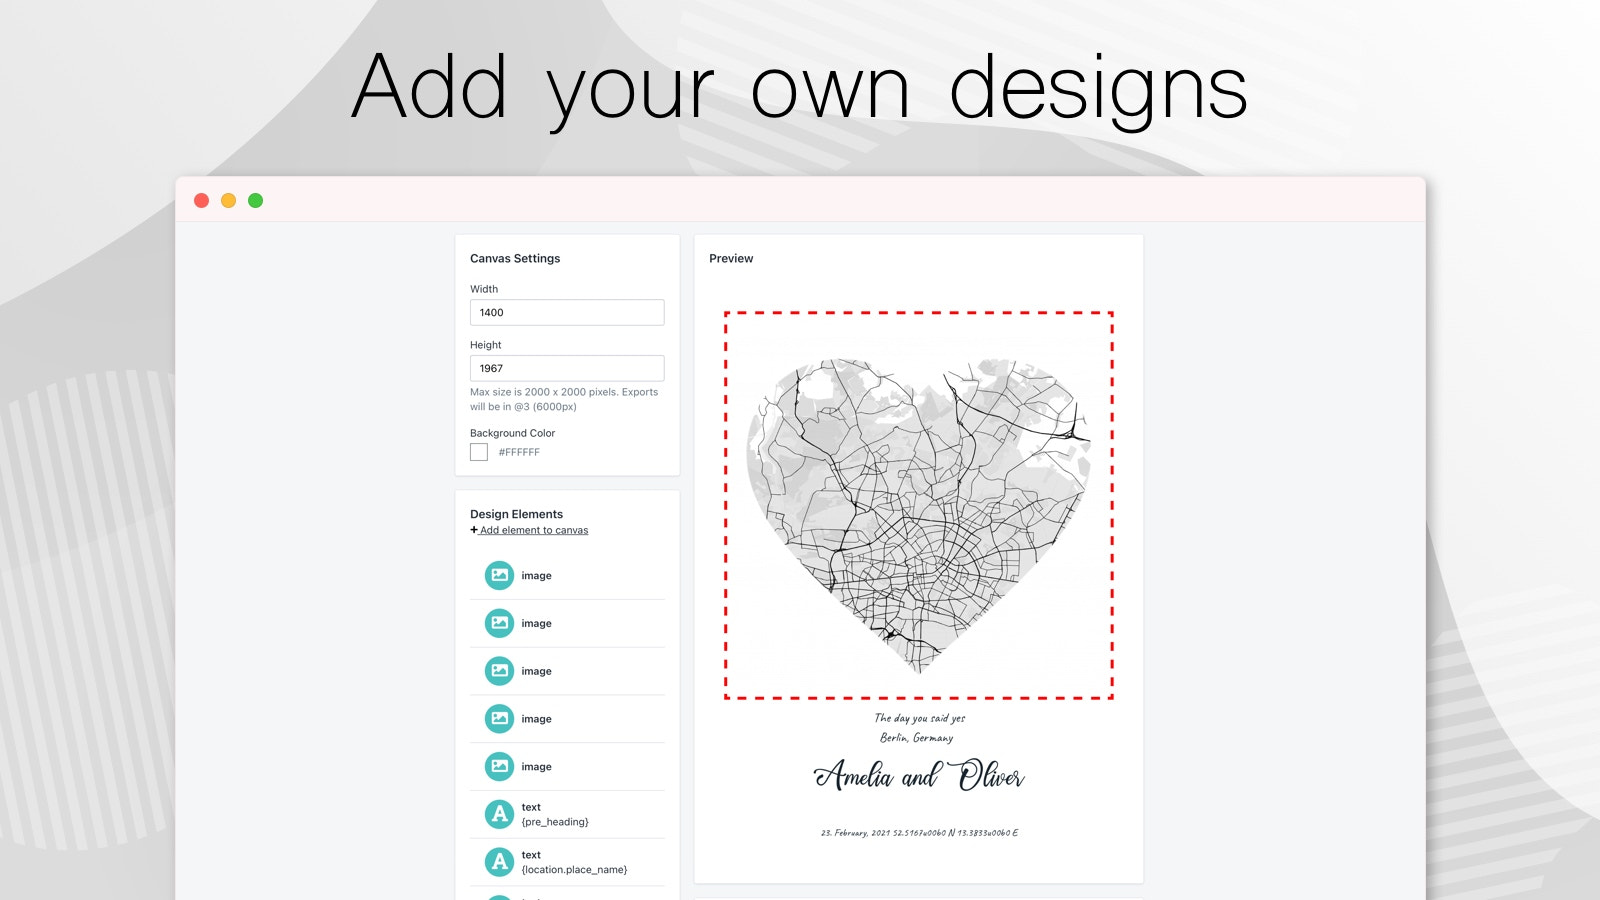 Add your own designs